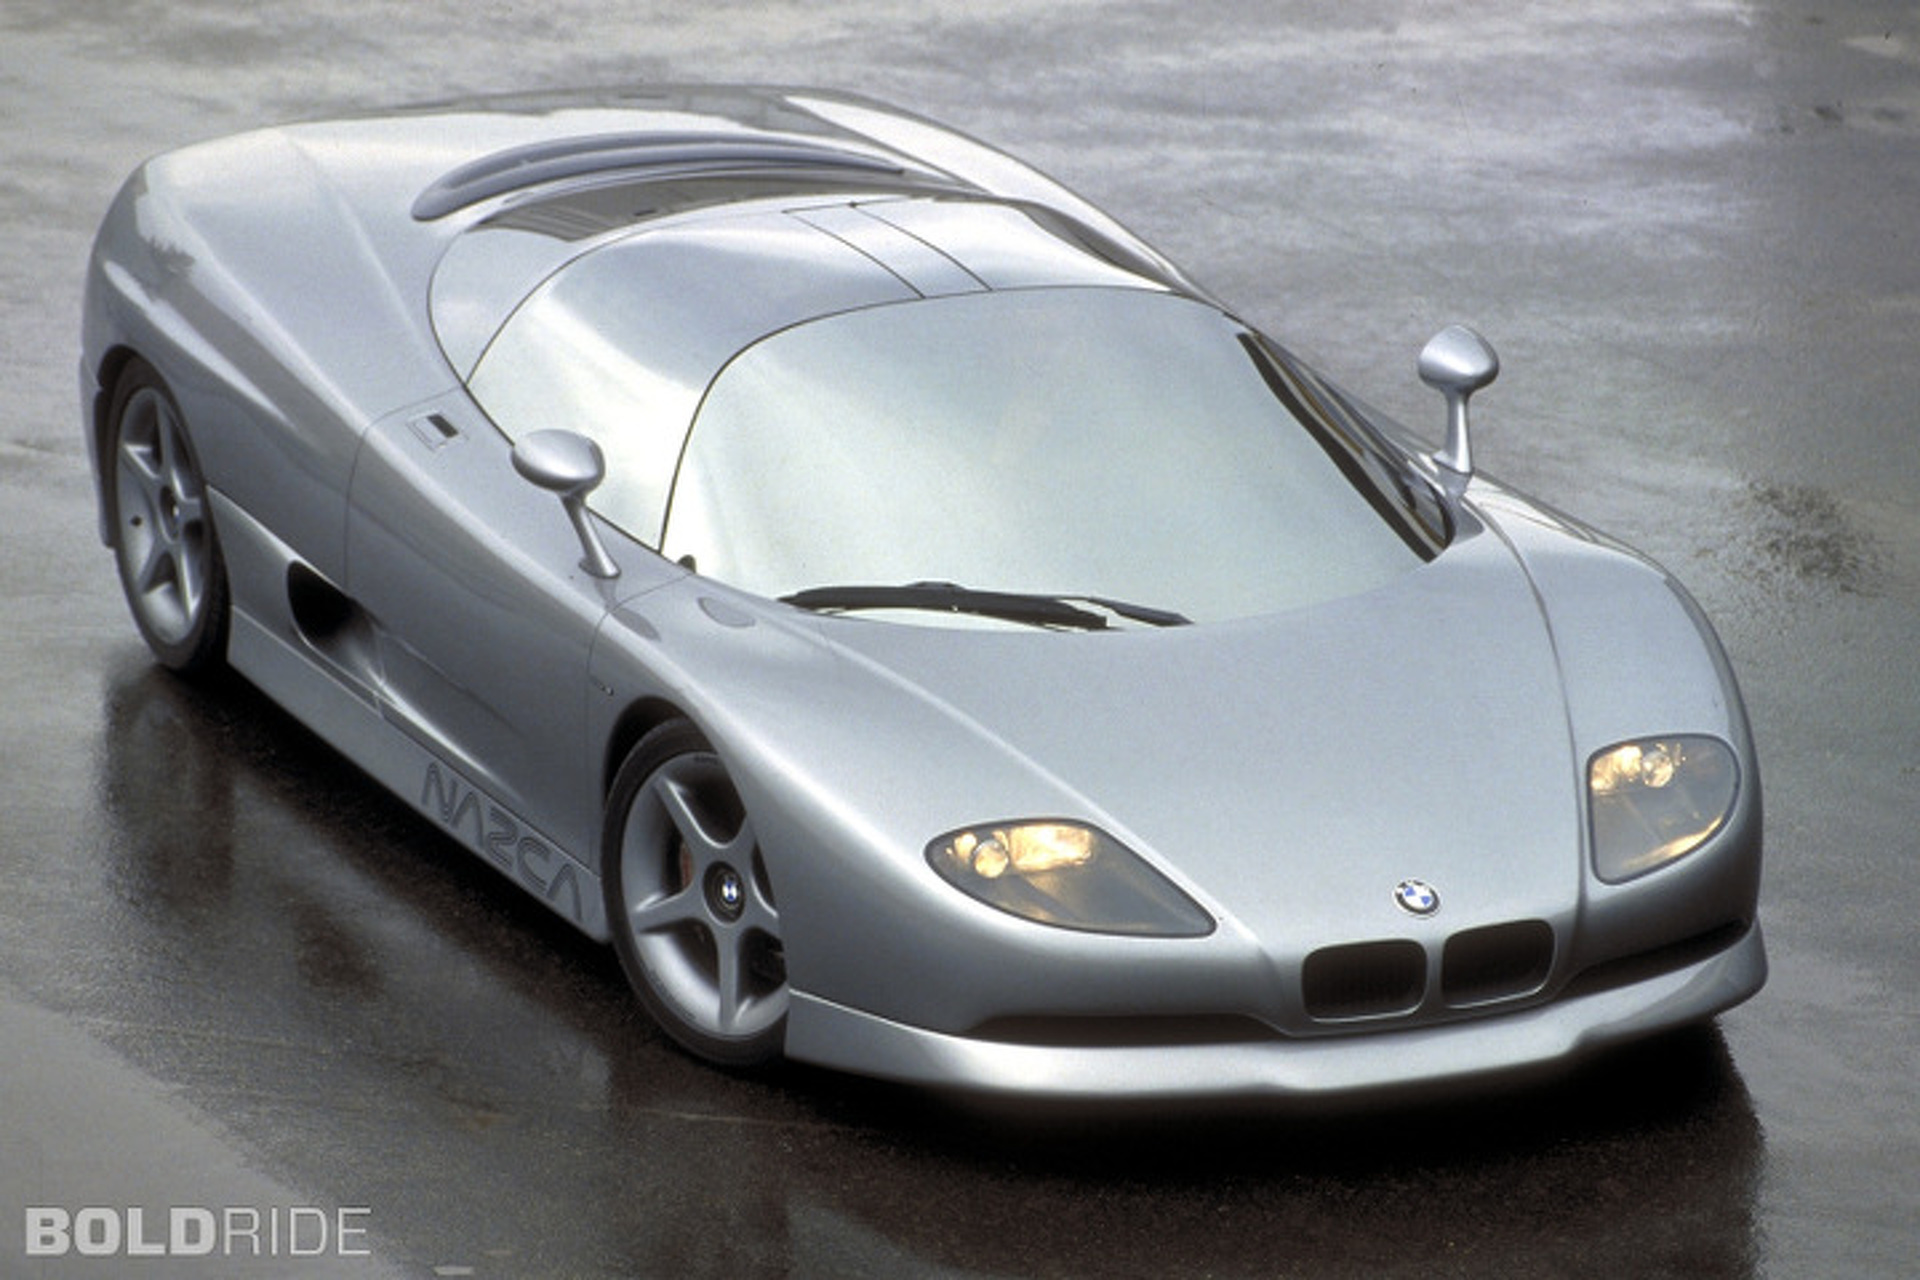 BMW's Best Supercars? Italdesign BMW Nazca Concepts